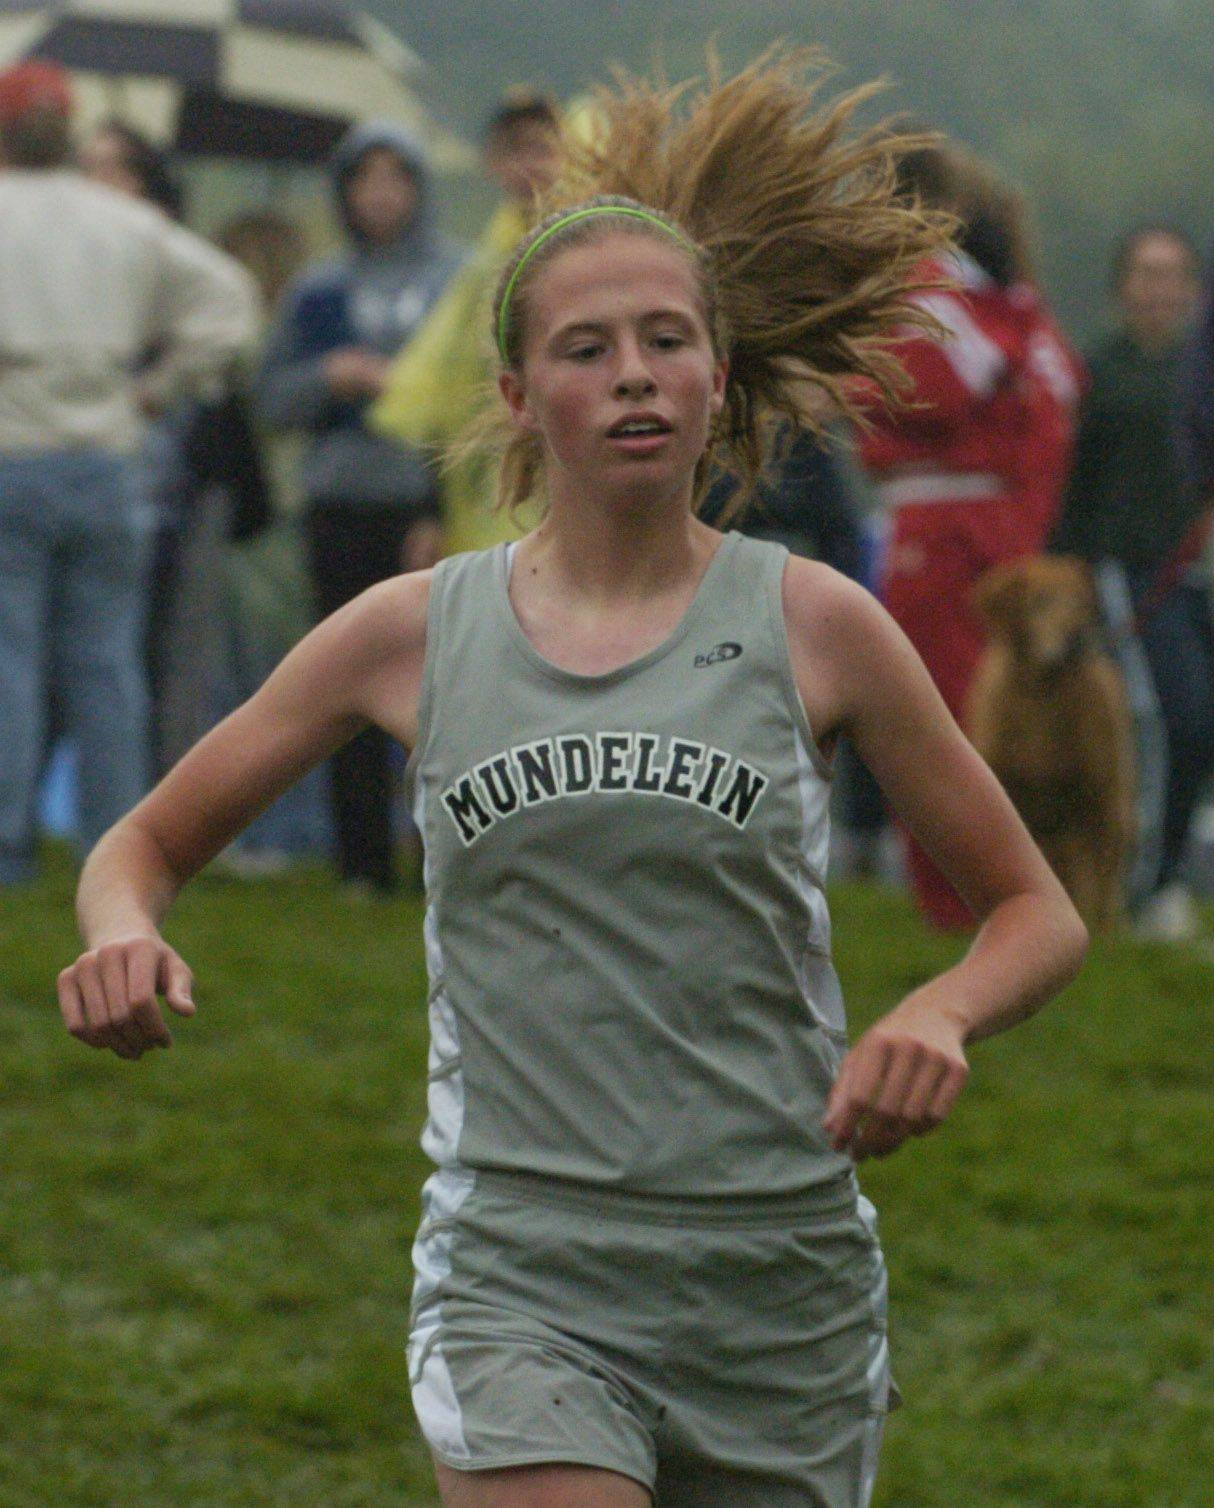 Marisa Perreault returns from a sixth-place North Suburban Conference finish to lead Mundelein this fall. Here, she runs downhill during the Wauconda Invitational at Lakewood Forest Preserve last season.